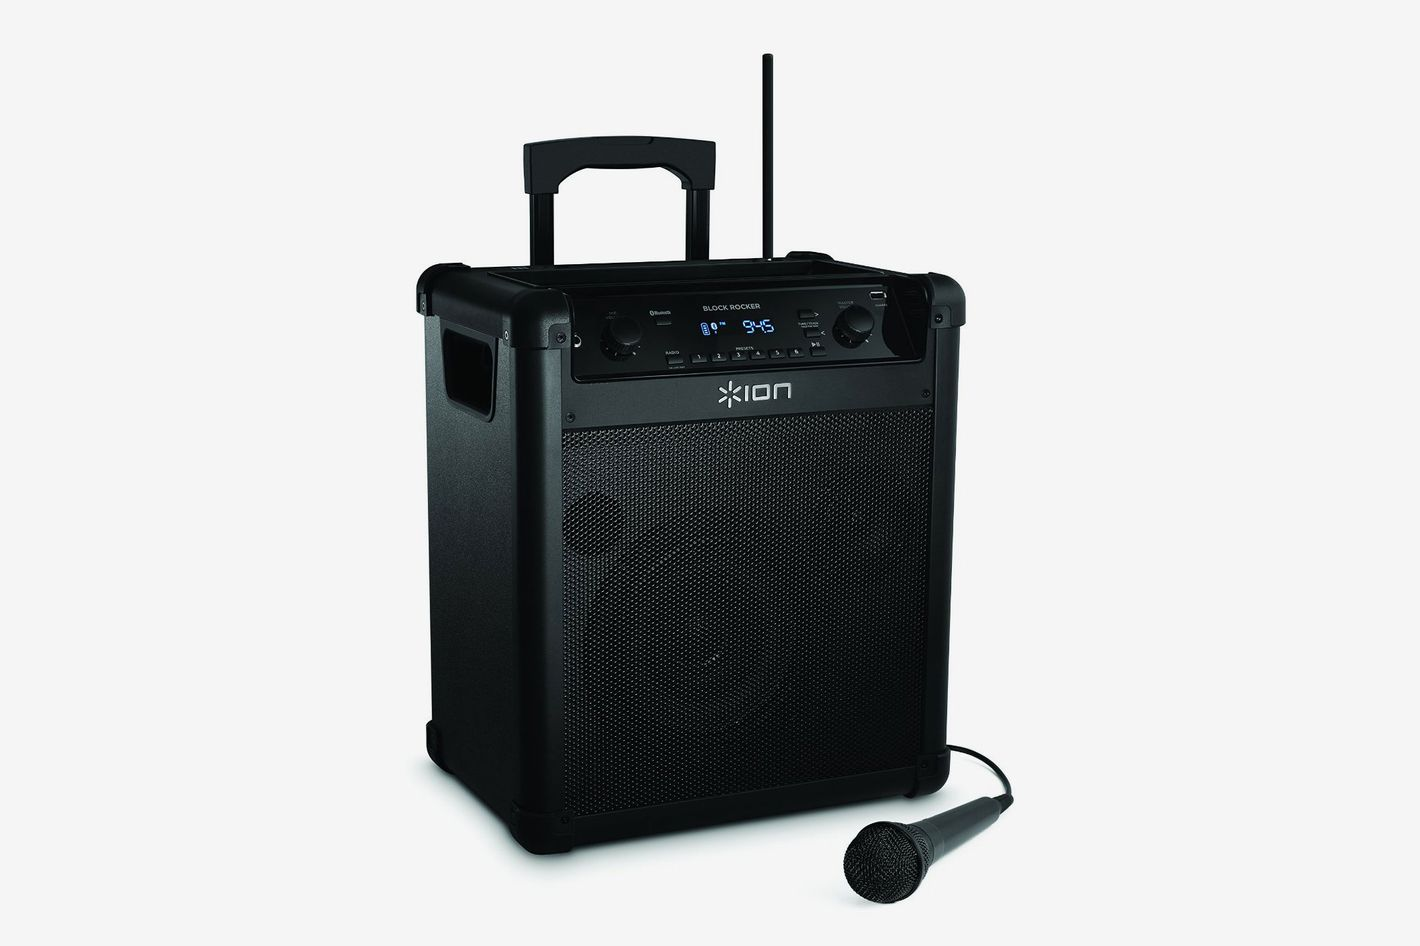 ION Audio Block Rocker Portable Bluetooth Speaker With Mic, Radio, and Wheels & Handle